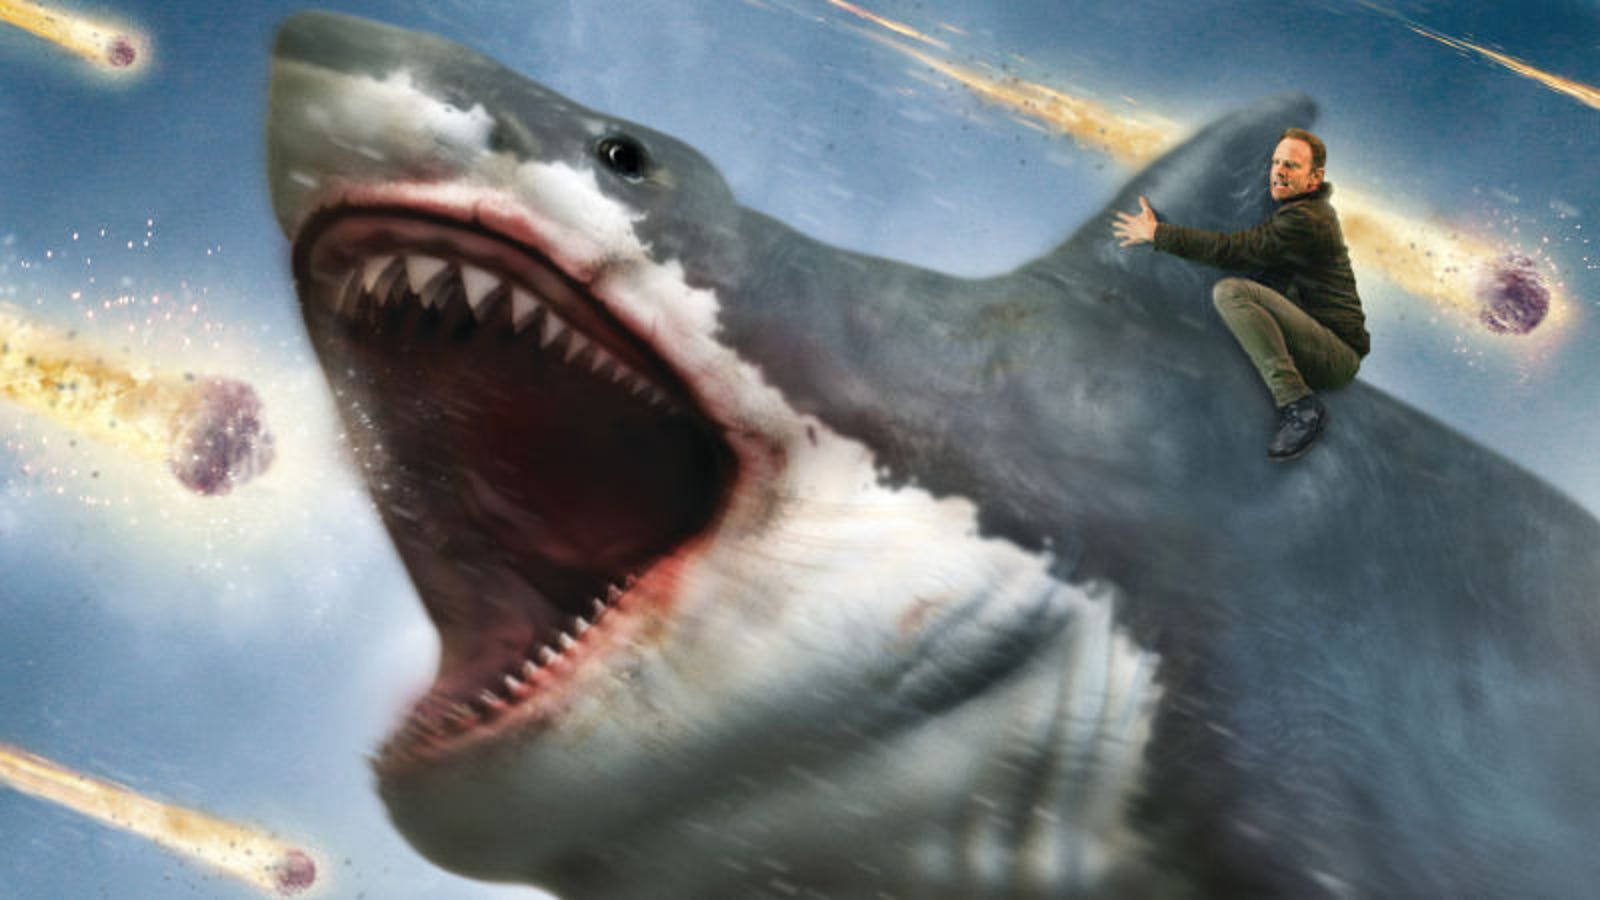 syfy tweeted out the best parts of sharknado 6 so you don